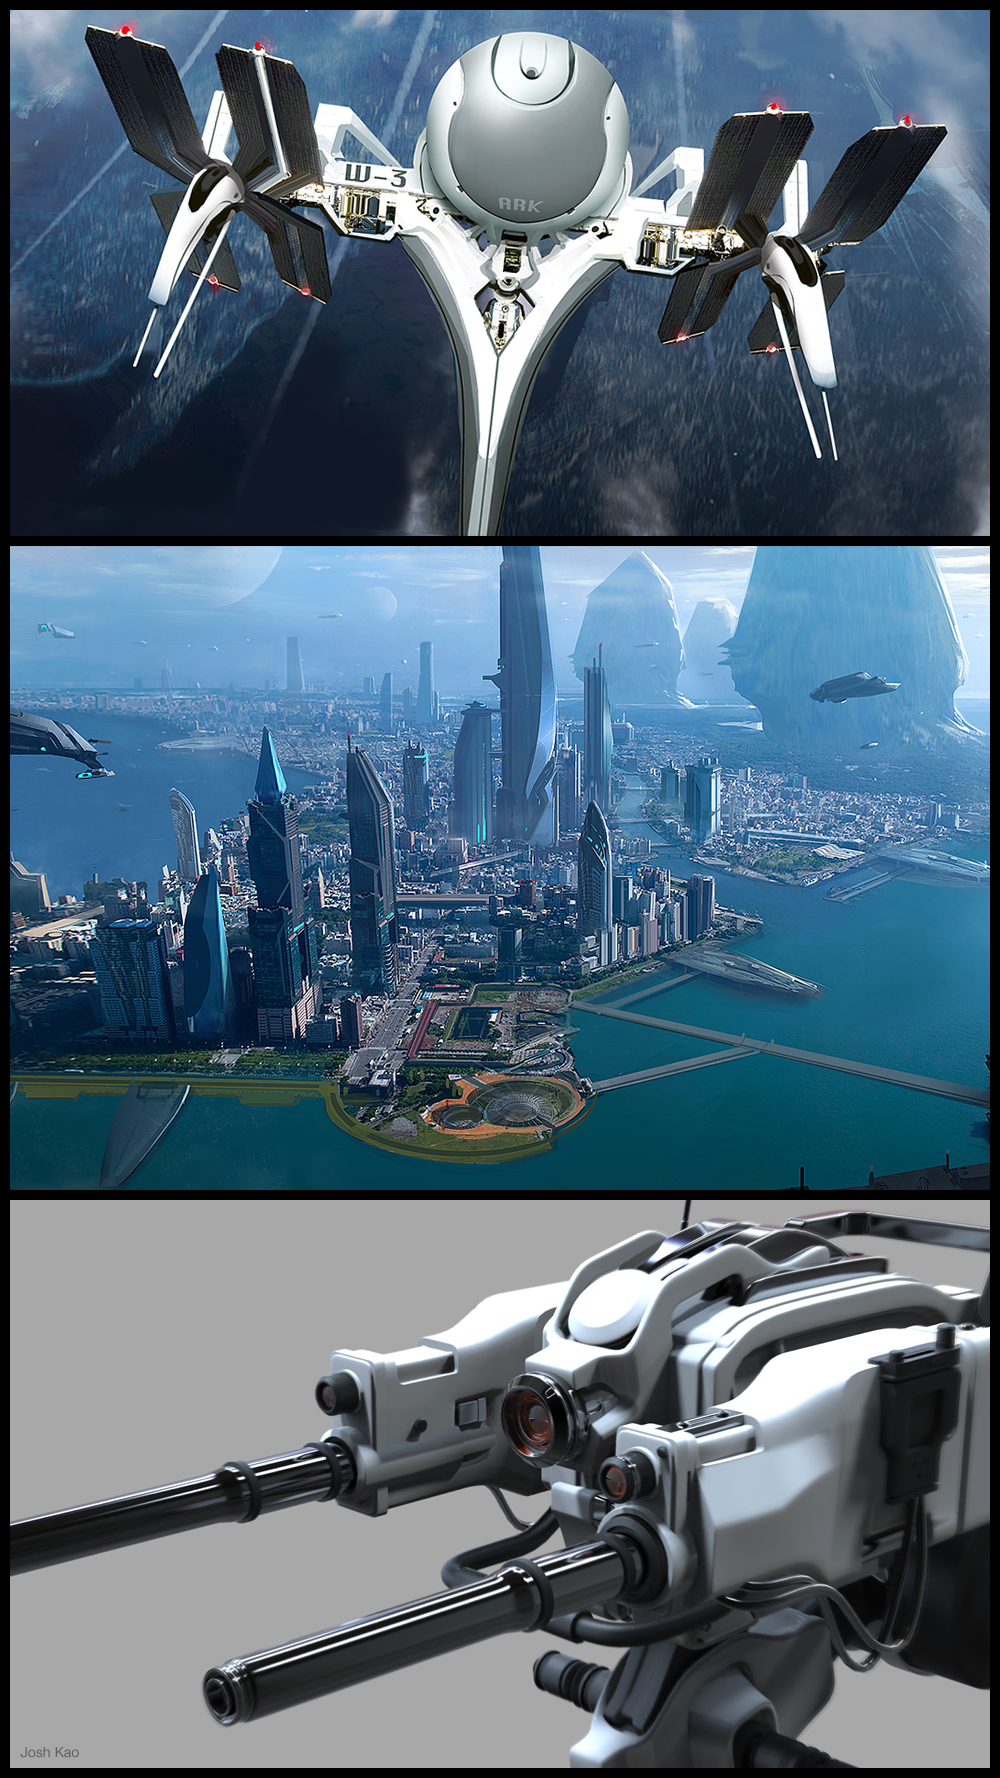 Take a look at some concept art and illustrations by Josh Kao! http://conceptartworld.com/?p=12272